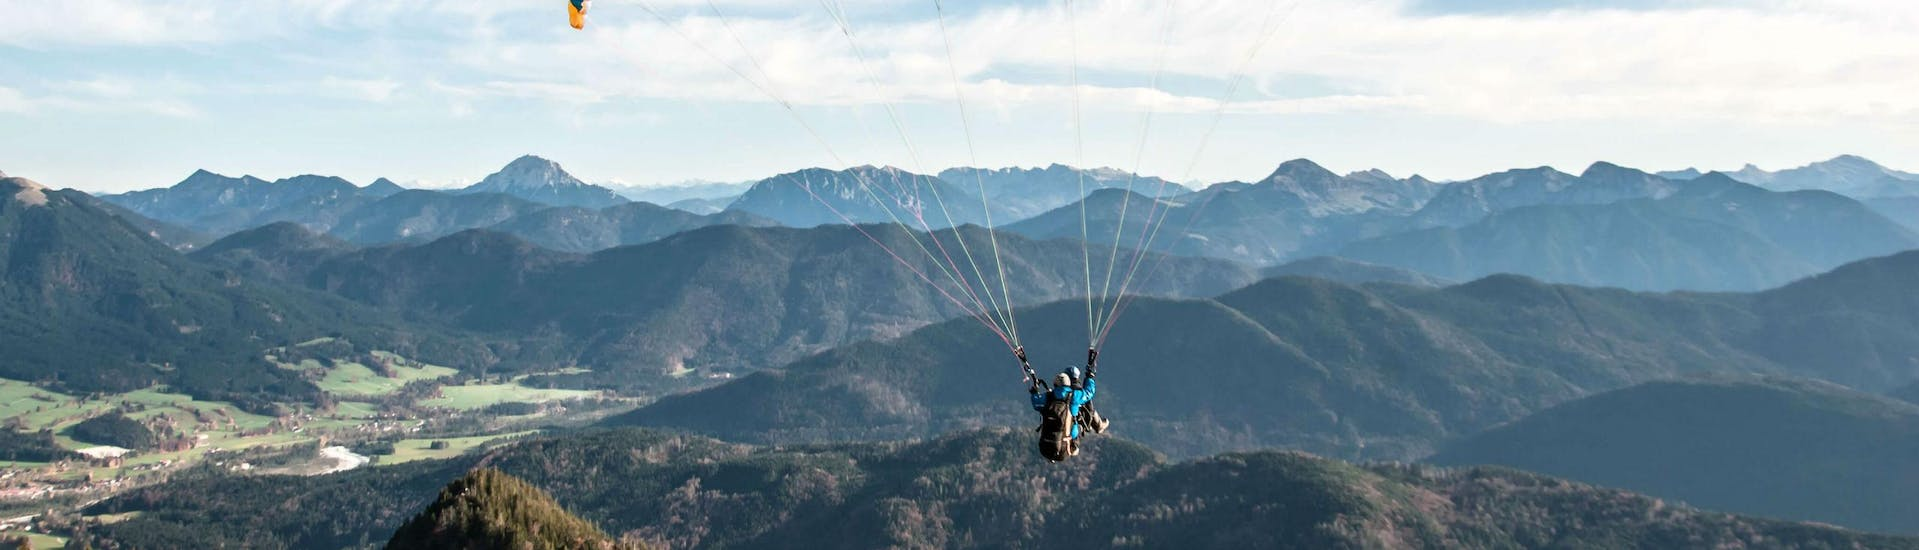 tandem-paragliding-in-wallberg-and-brauneck-bavarian-alps-paraworth-hero